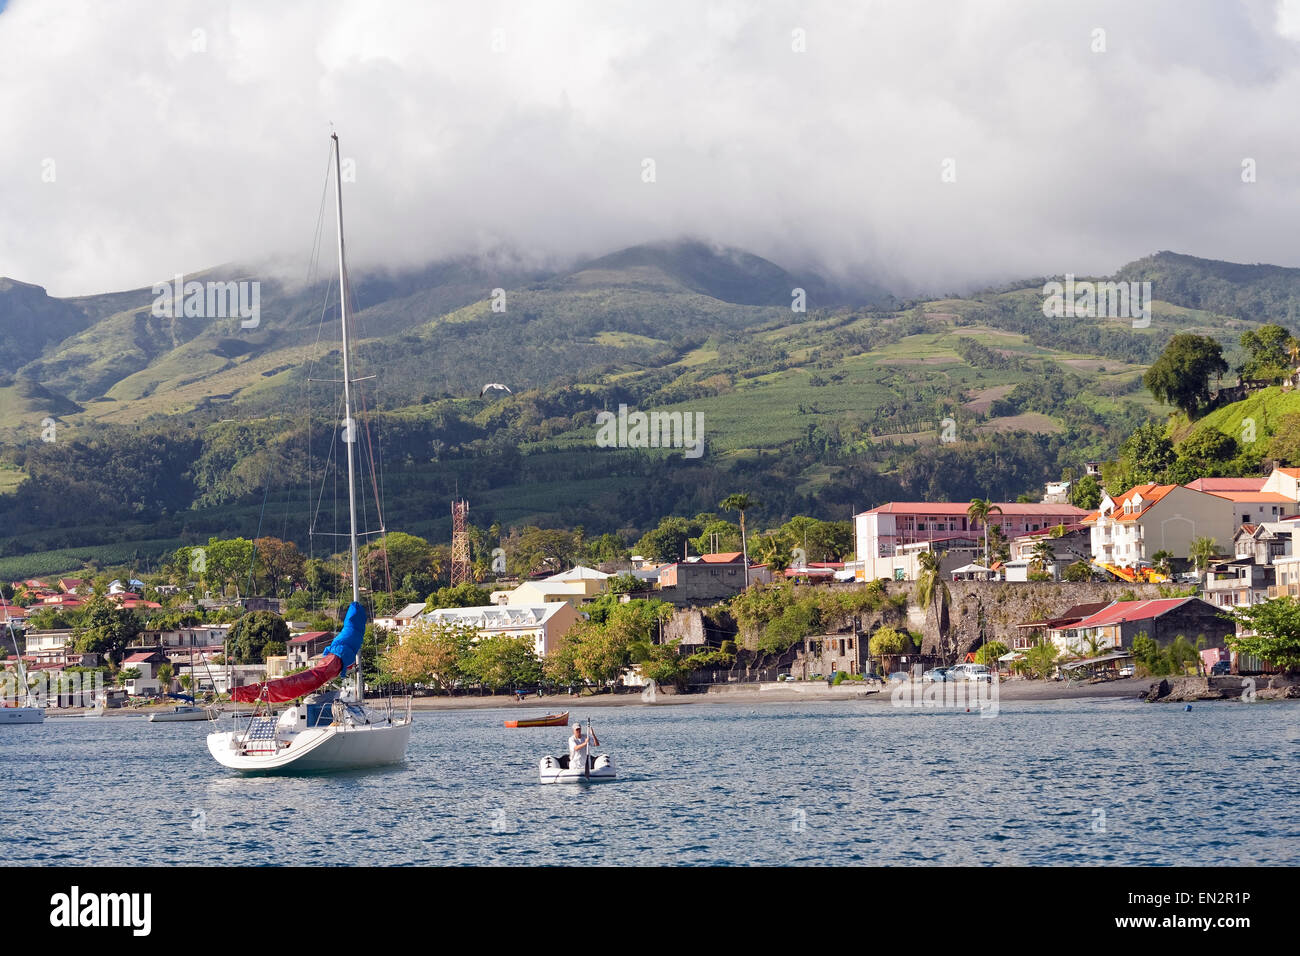 Saint-pierre, Martinique Photo Stock